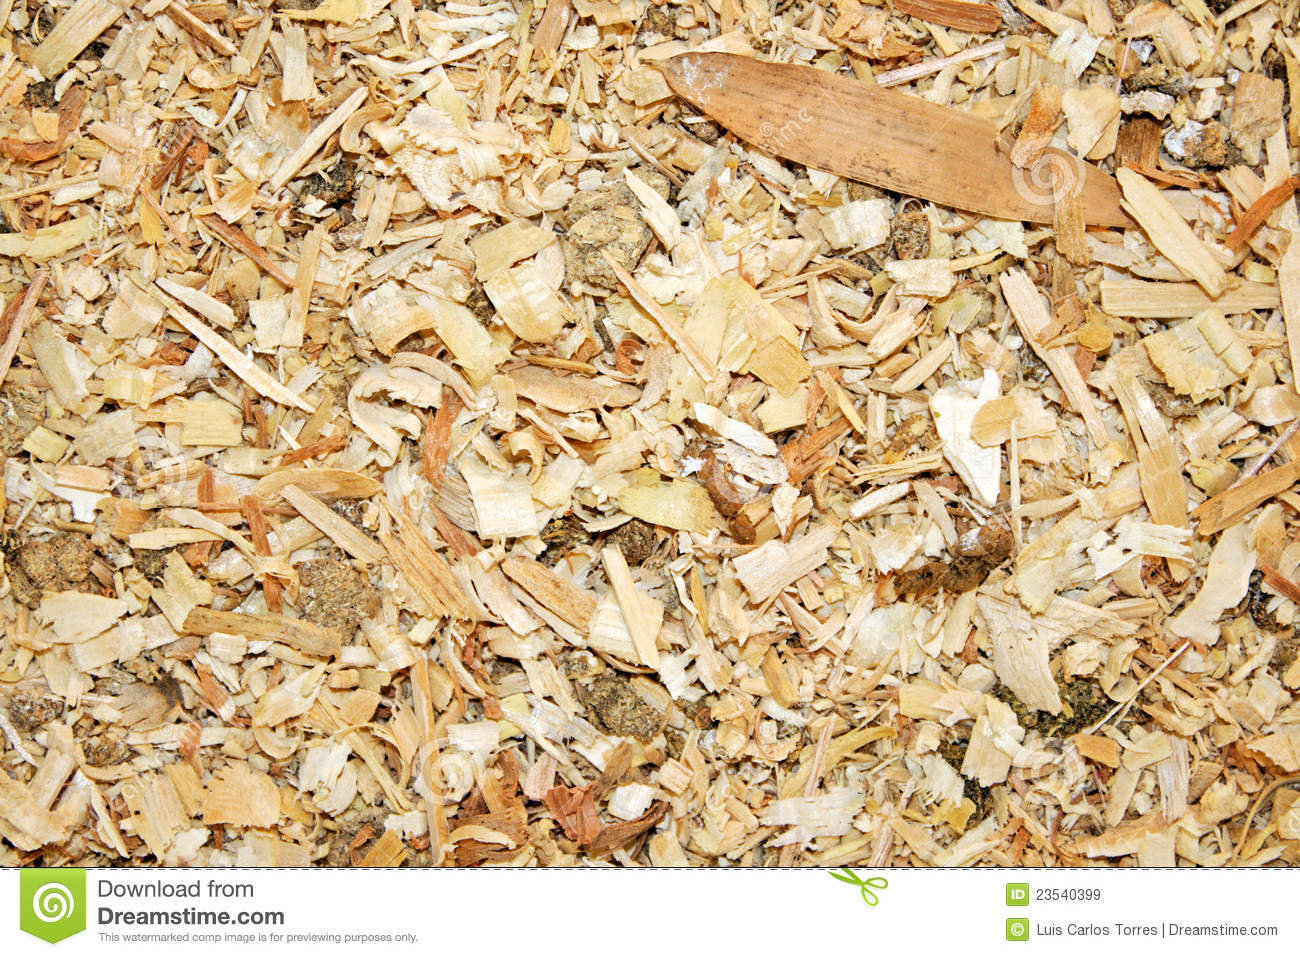 Sawdust animal bedding texture stock image